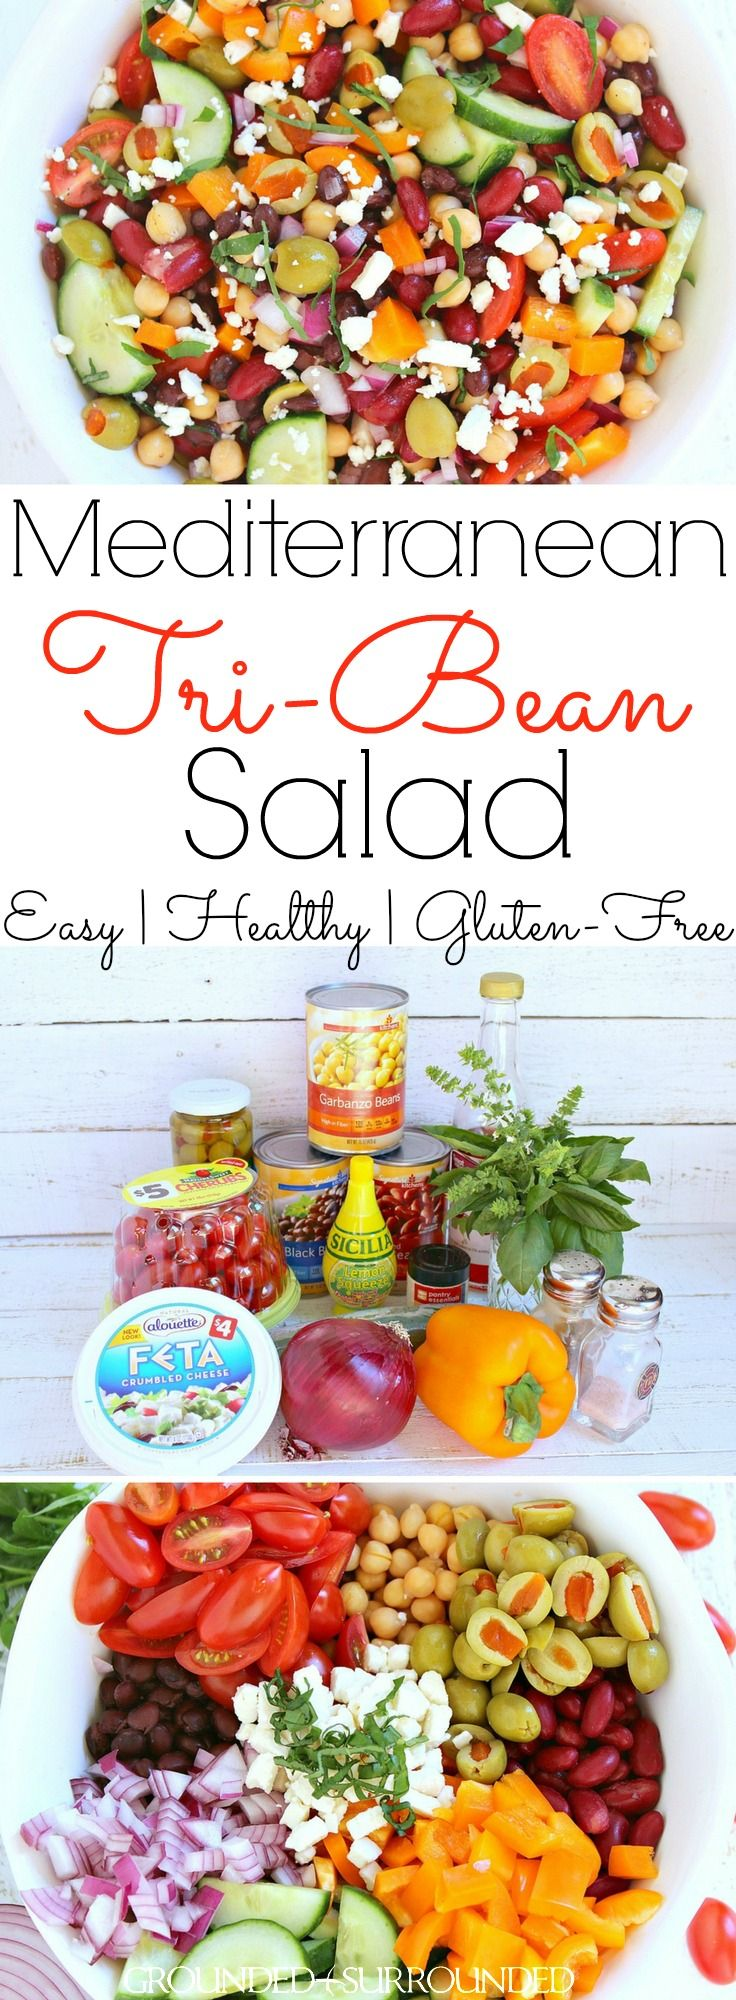 The BEST Mediterranean Tri-Bean Salad | This healthy and easy three bean salad makes a great lunch or side dish. @groundsurround